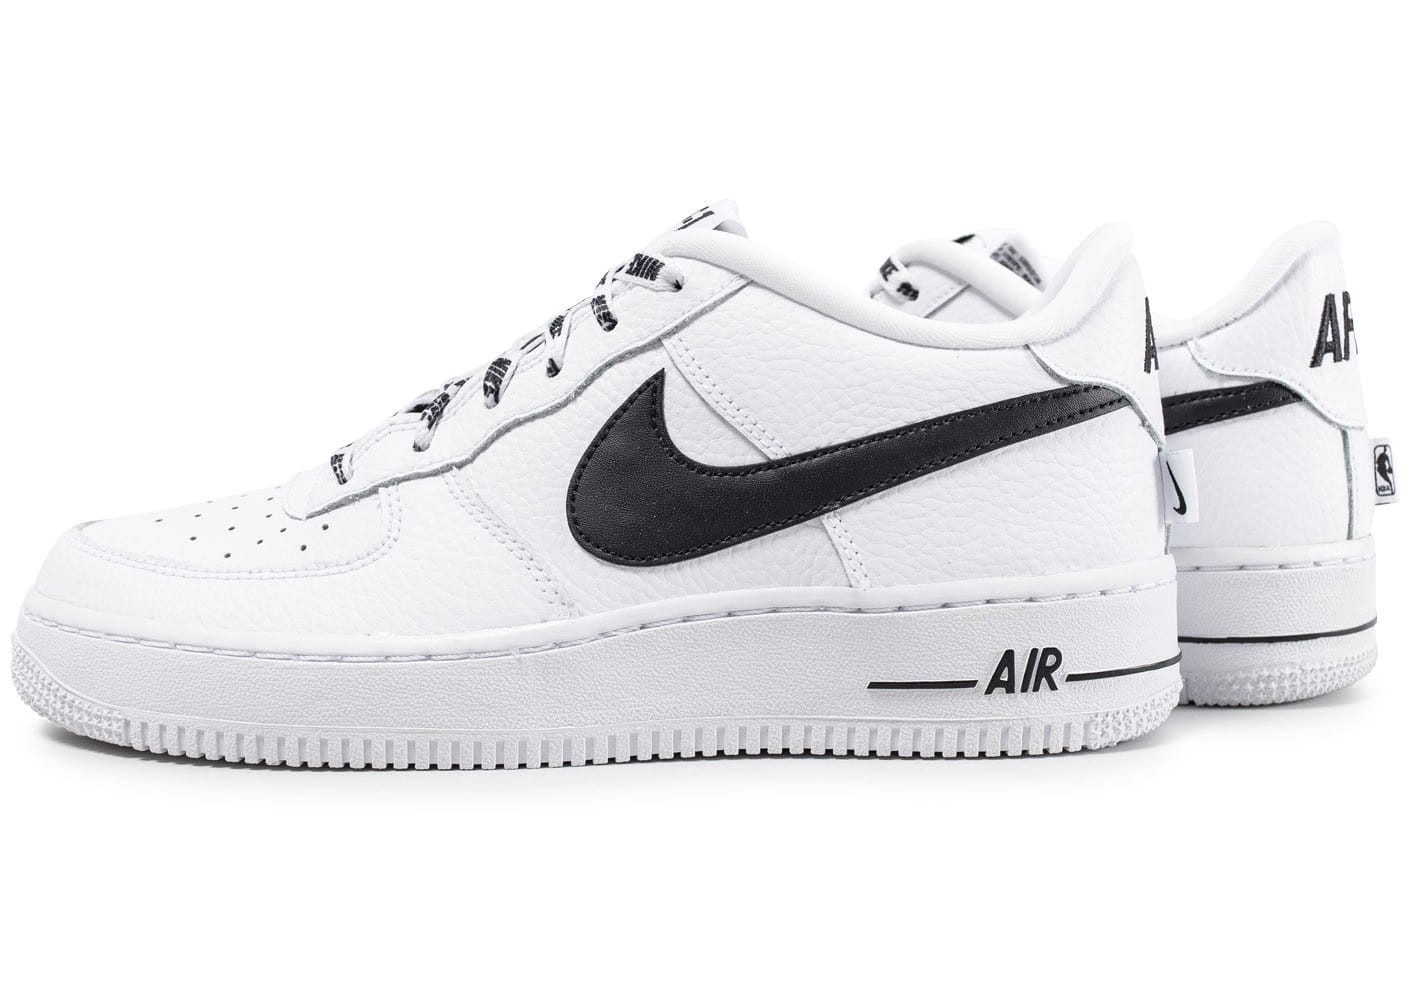 air force one lv8 femme Outlet Vente Authentique - kiwie.fr